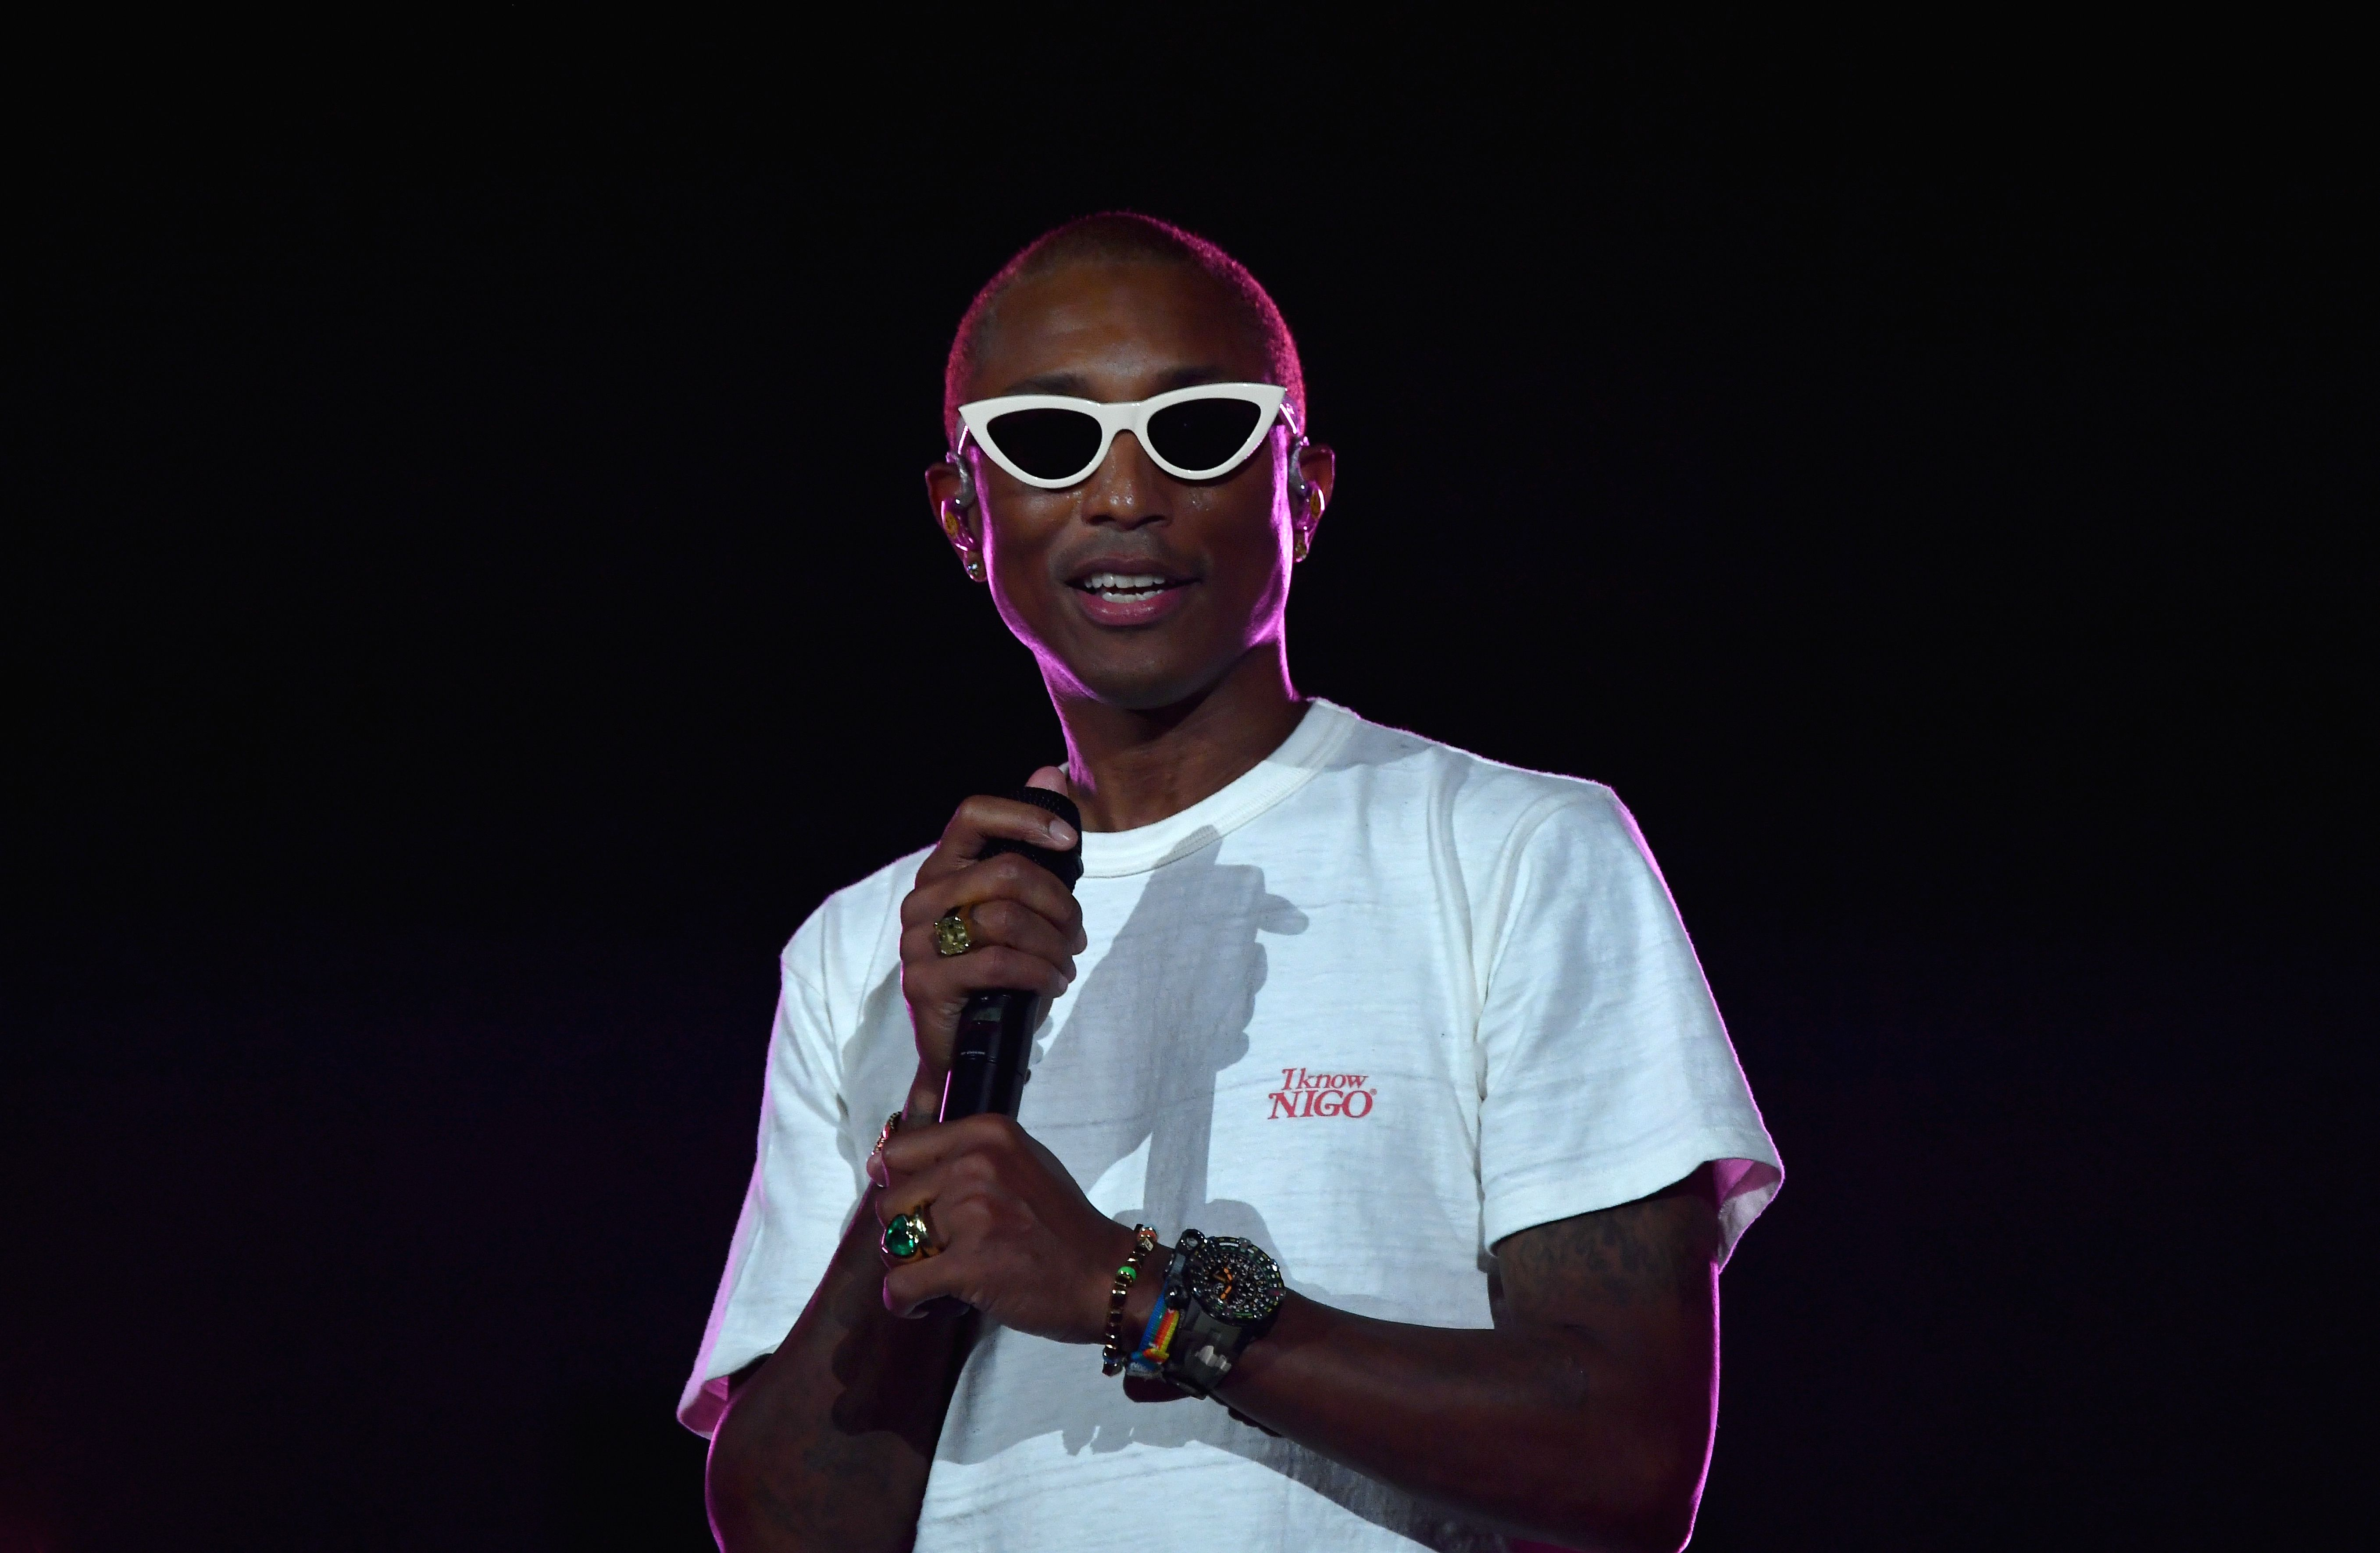 US singer Pharrell performs onstage at the 2019 Global Citizen Festival: Power The Movement in Central Park in New York on September 28, 2019. (Photo by Angela Weiss / AFP)        (Photo credit should read ANGELA WEISS/AFP/Getty Images)